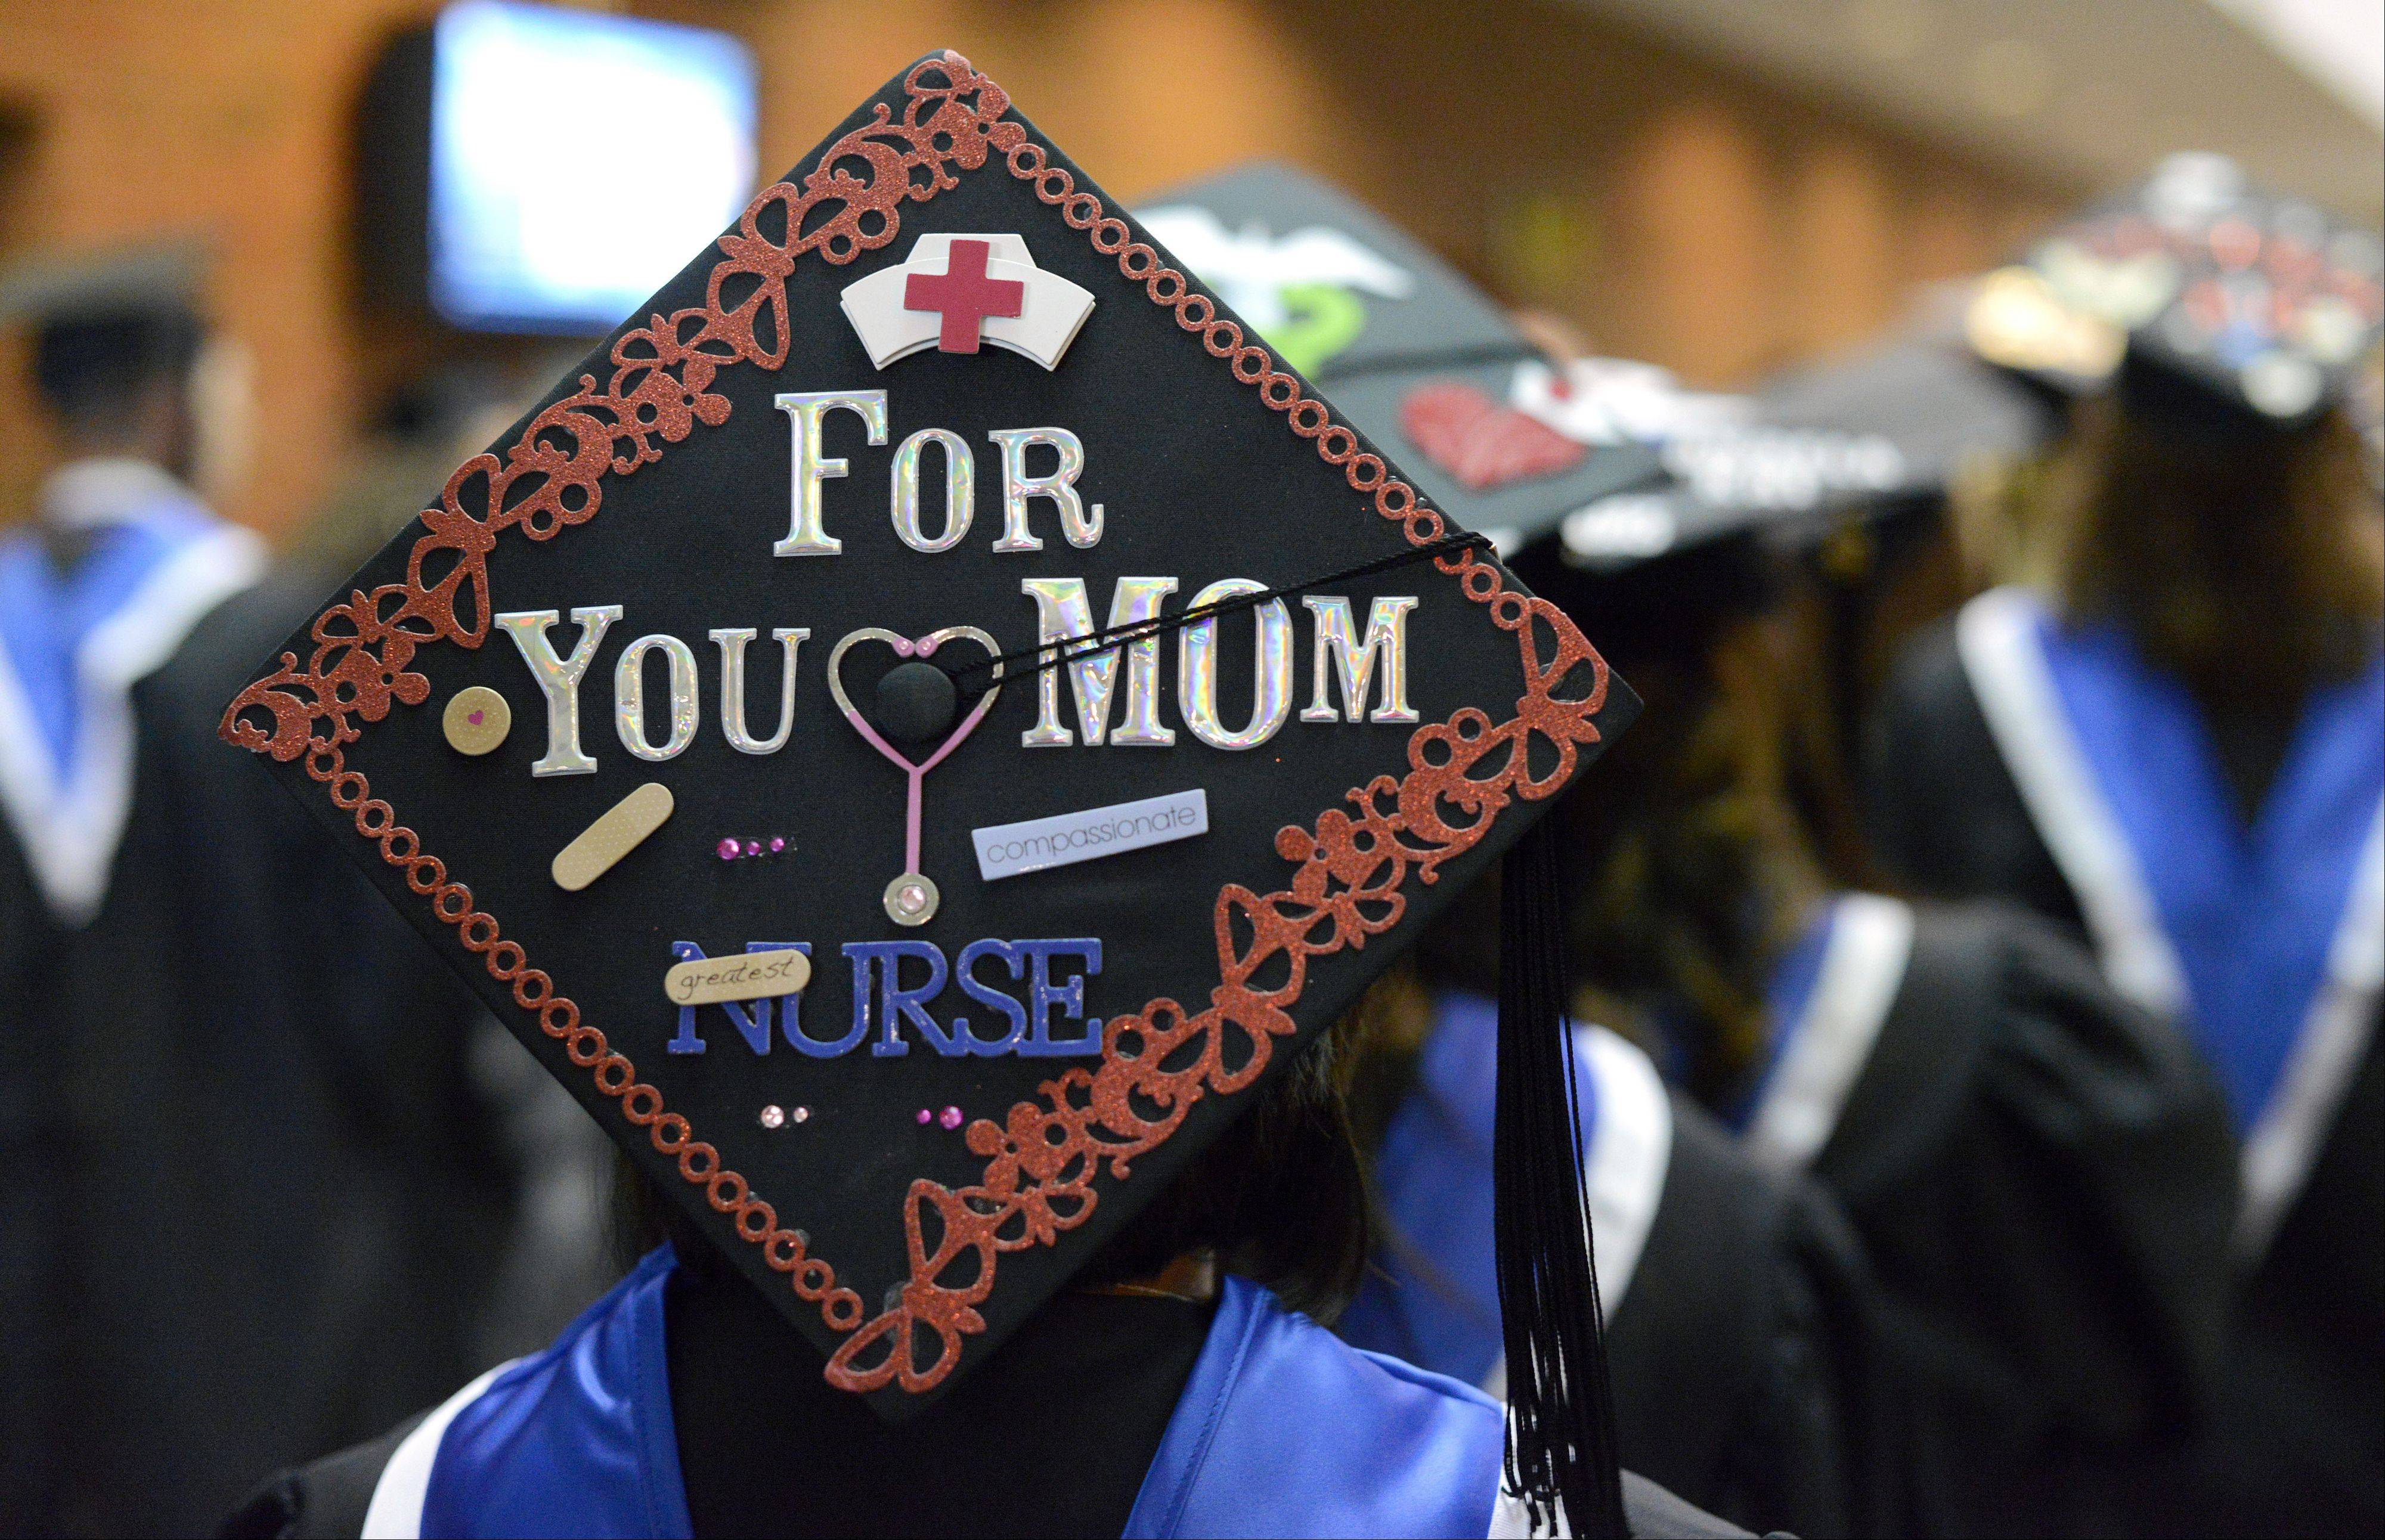 Rinah Ortega of Gilberts decorated her cap for her Elgin Community College graduation to honor her mother, who died recently. The commencement ceremony was on Saturday.